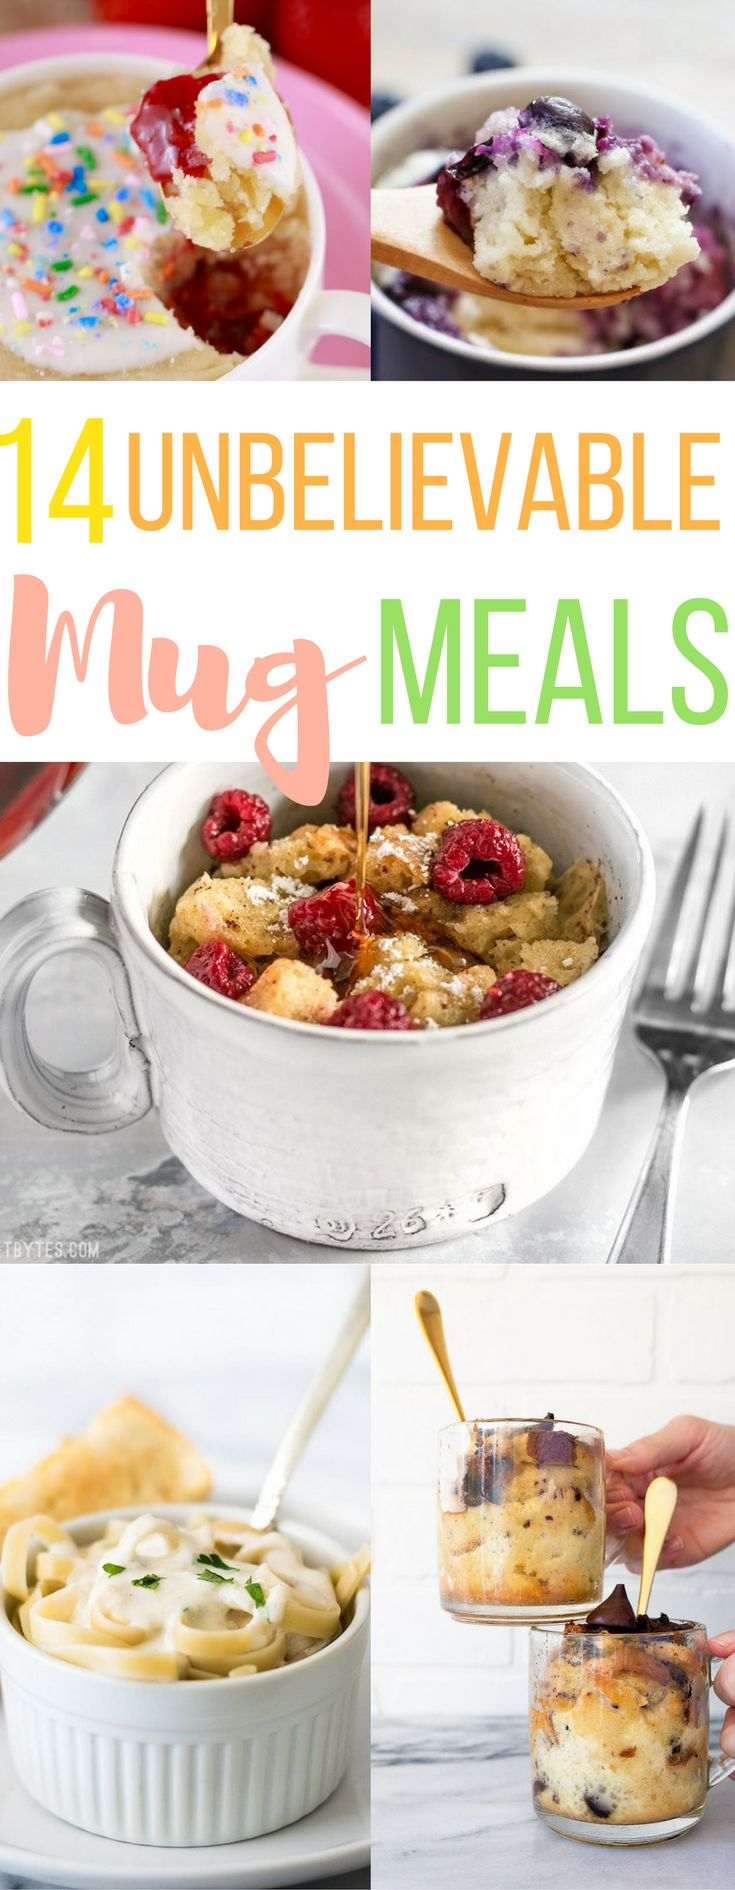 14 unbelievable meals you can make in a mug. mug french toast banana bread pasta breakfast dinner dessert great for on the go busy moms meals teens college food easy microwave lazy girl cake mug hacks hinthacks.com